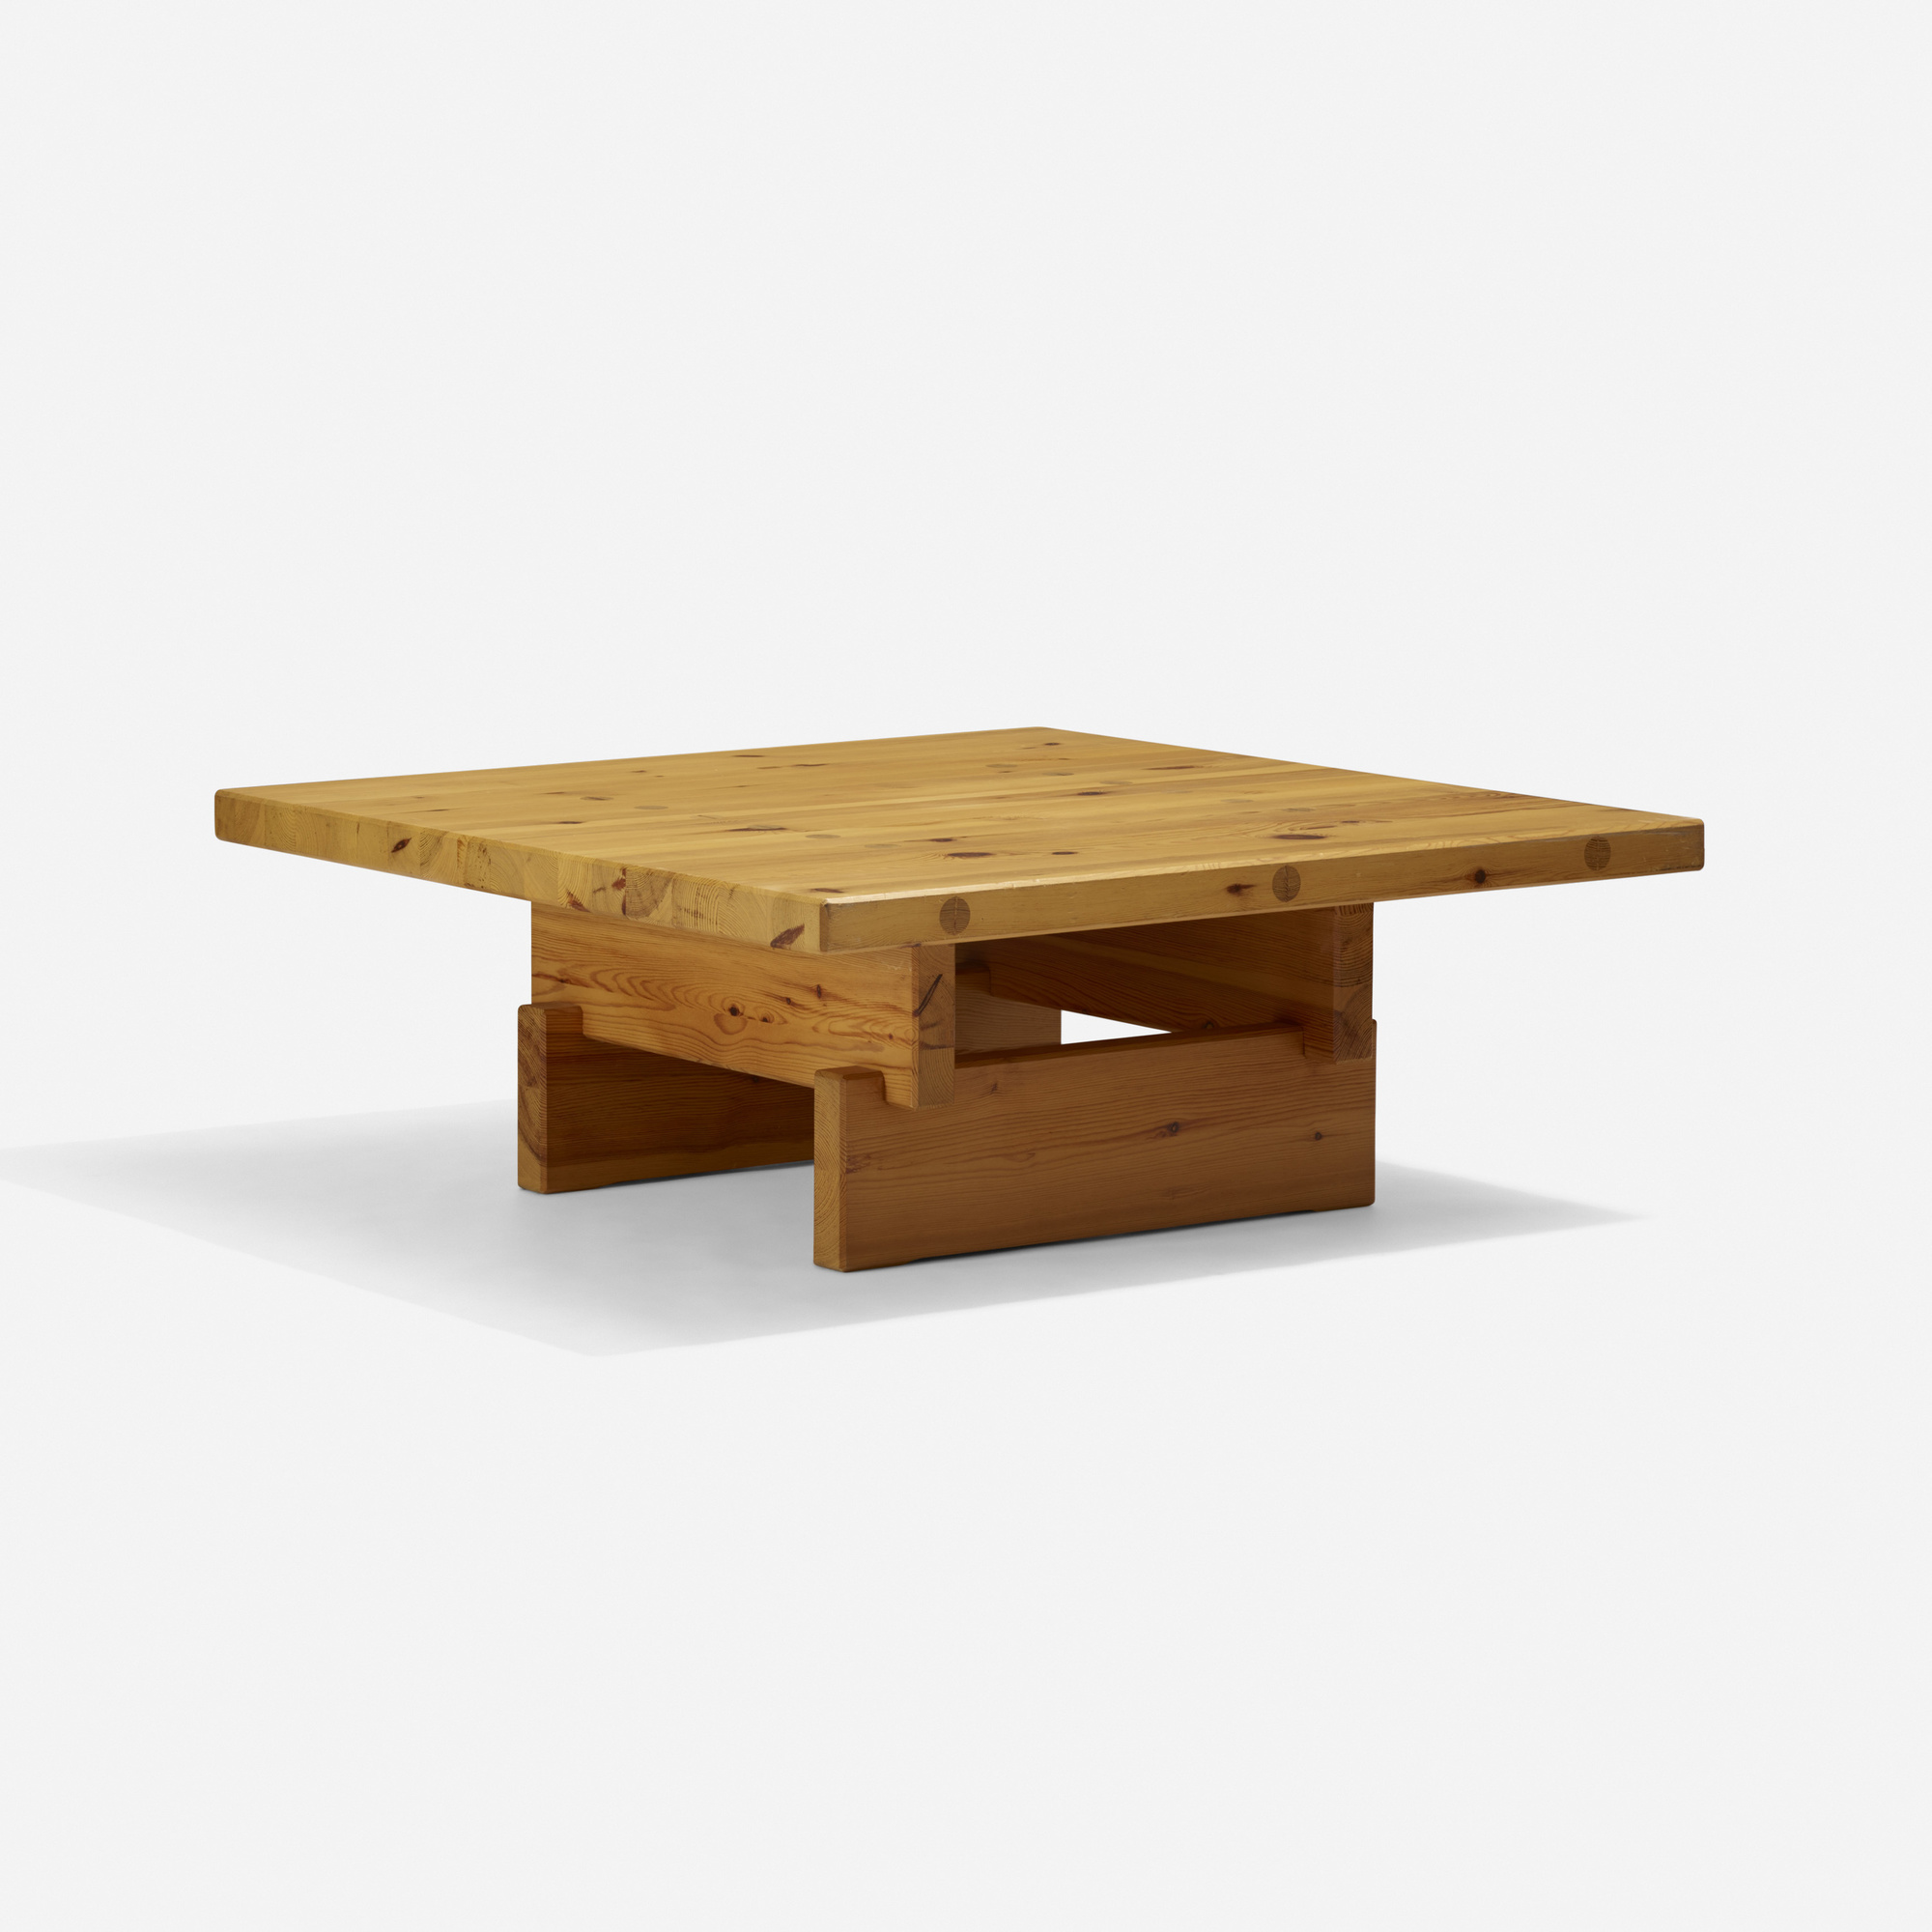 307: Roland Wilhelmsson / coffee table, model 151 (1 of 1)